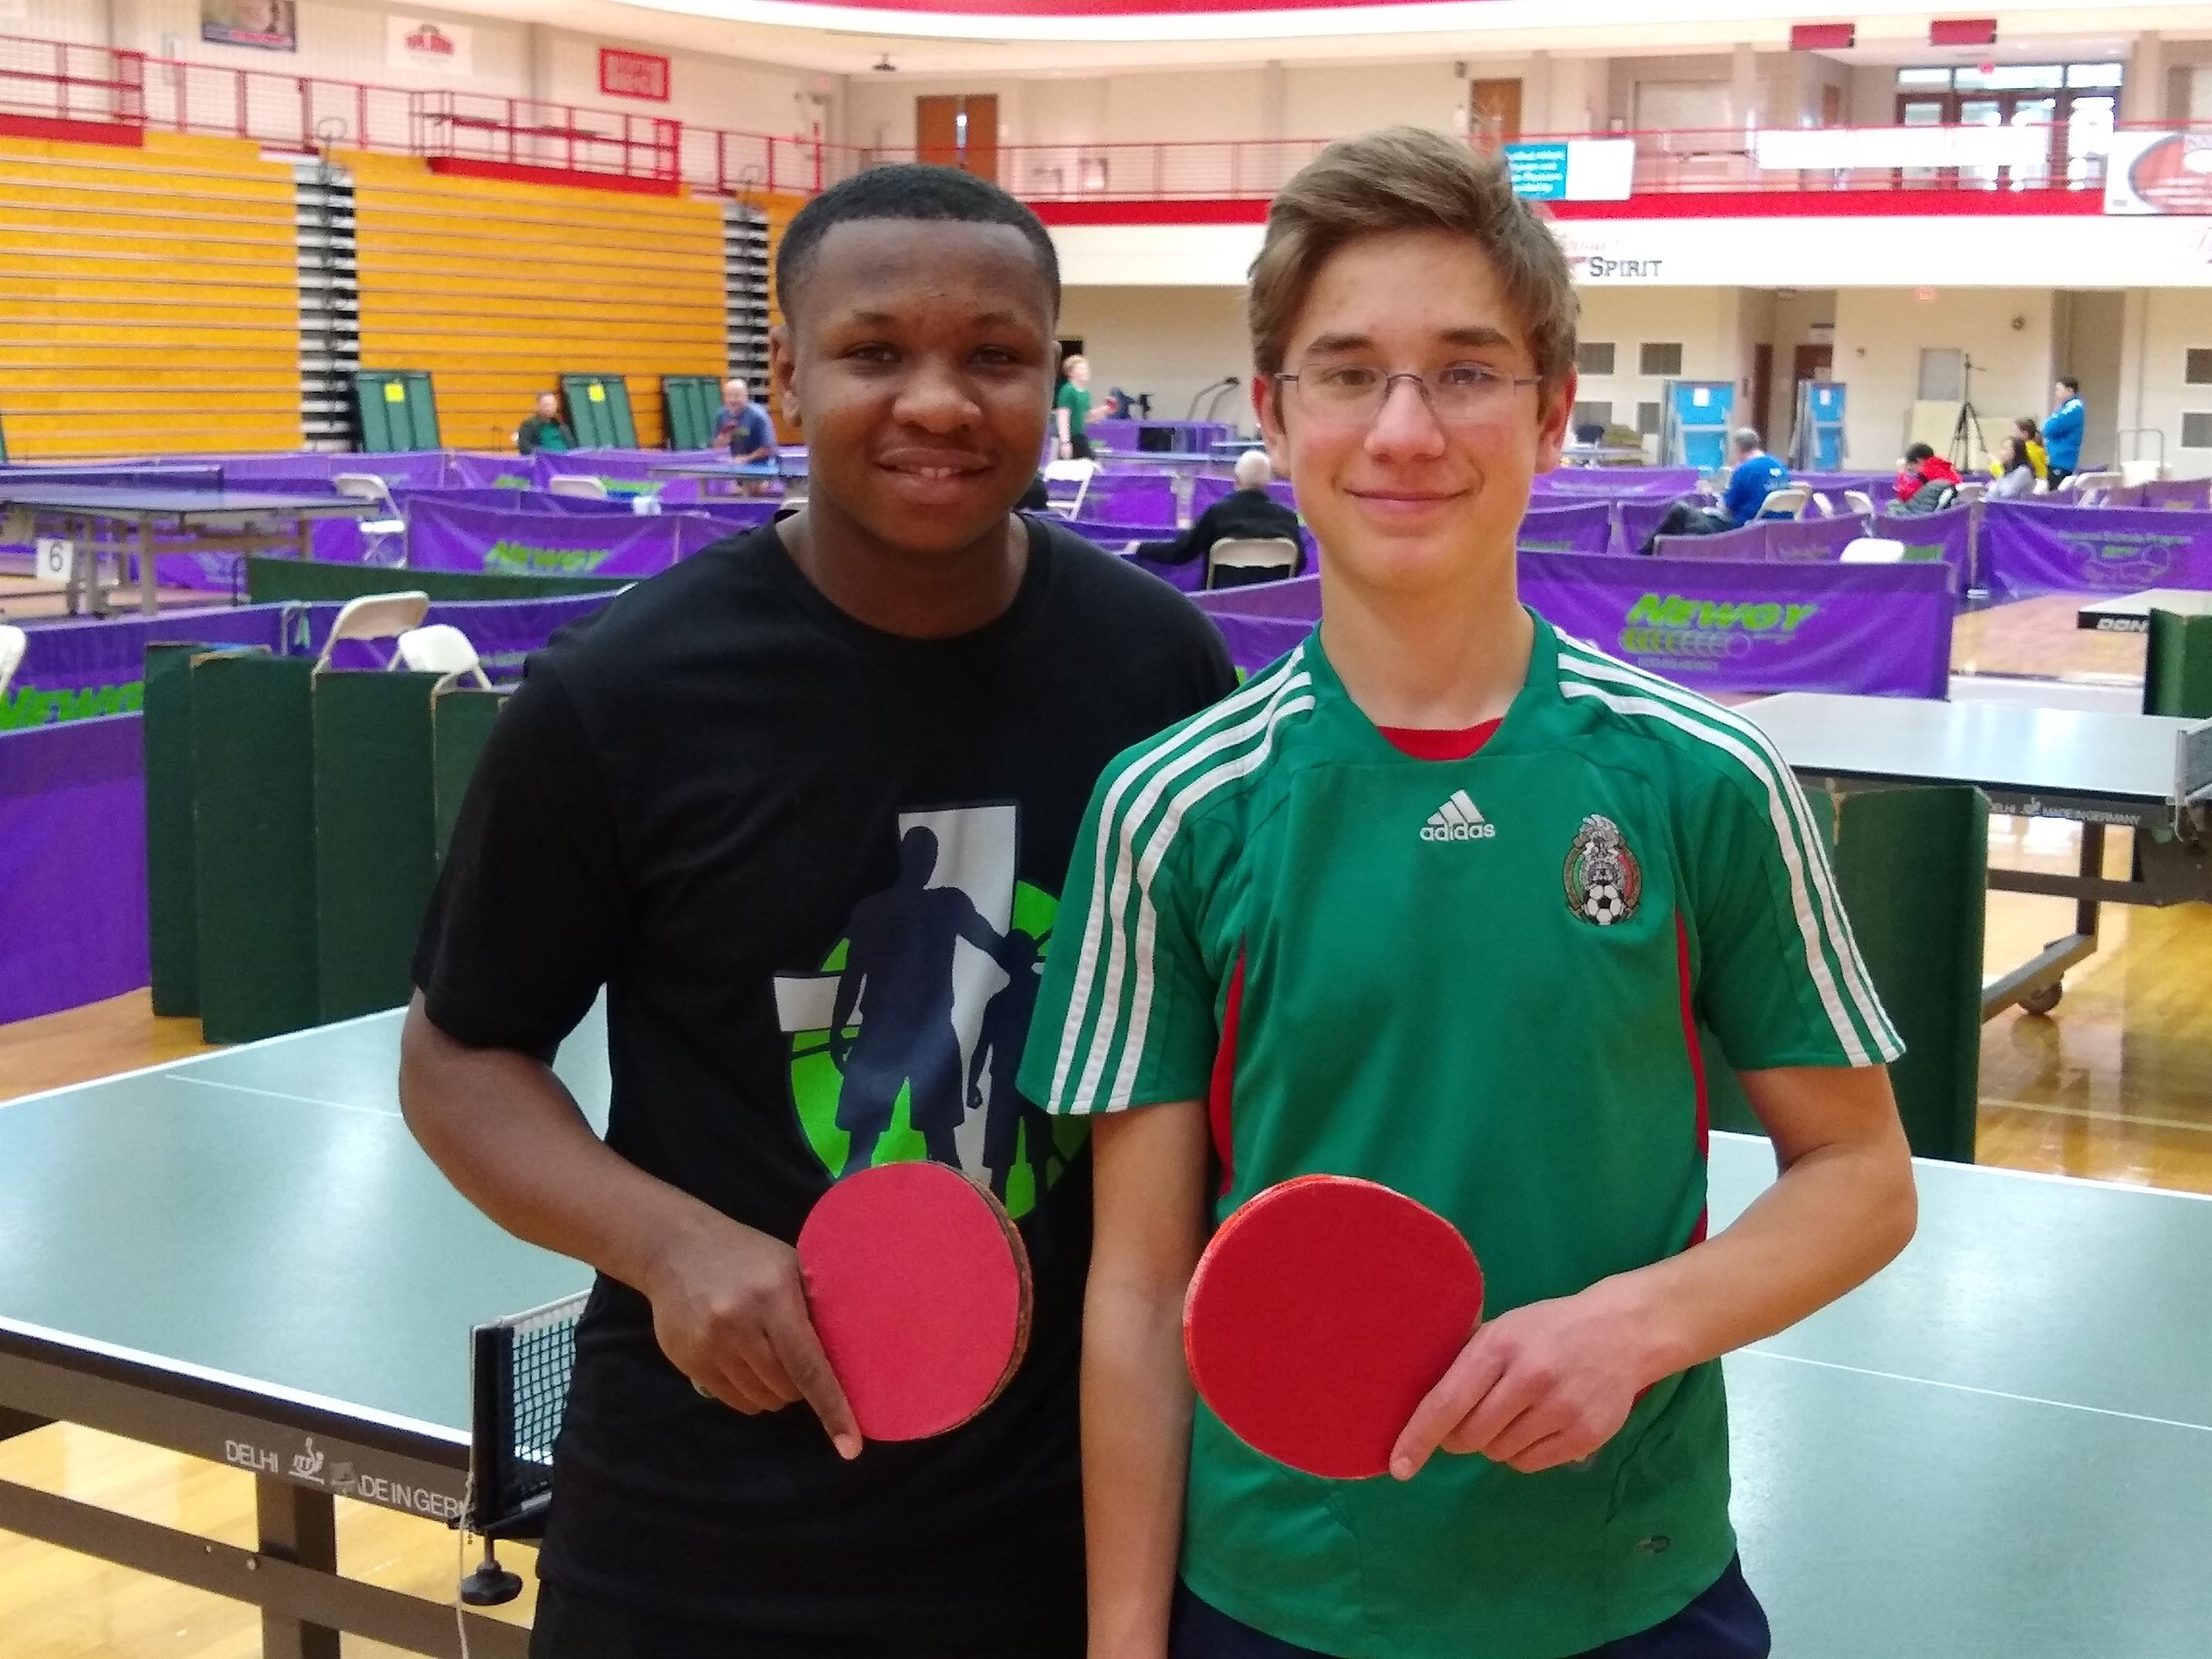 Two Local Juniors Battle it Out at Table Tennis Tournament